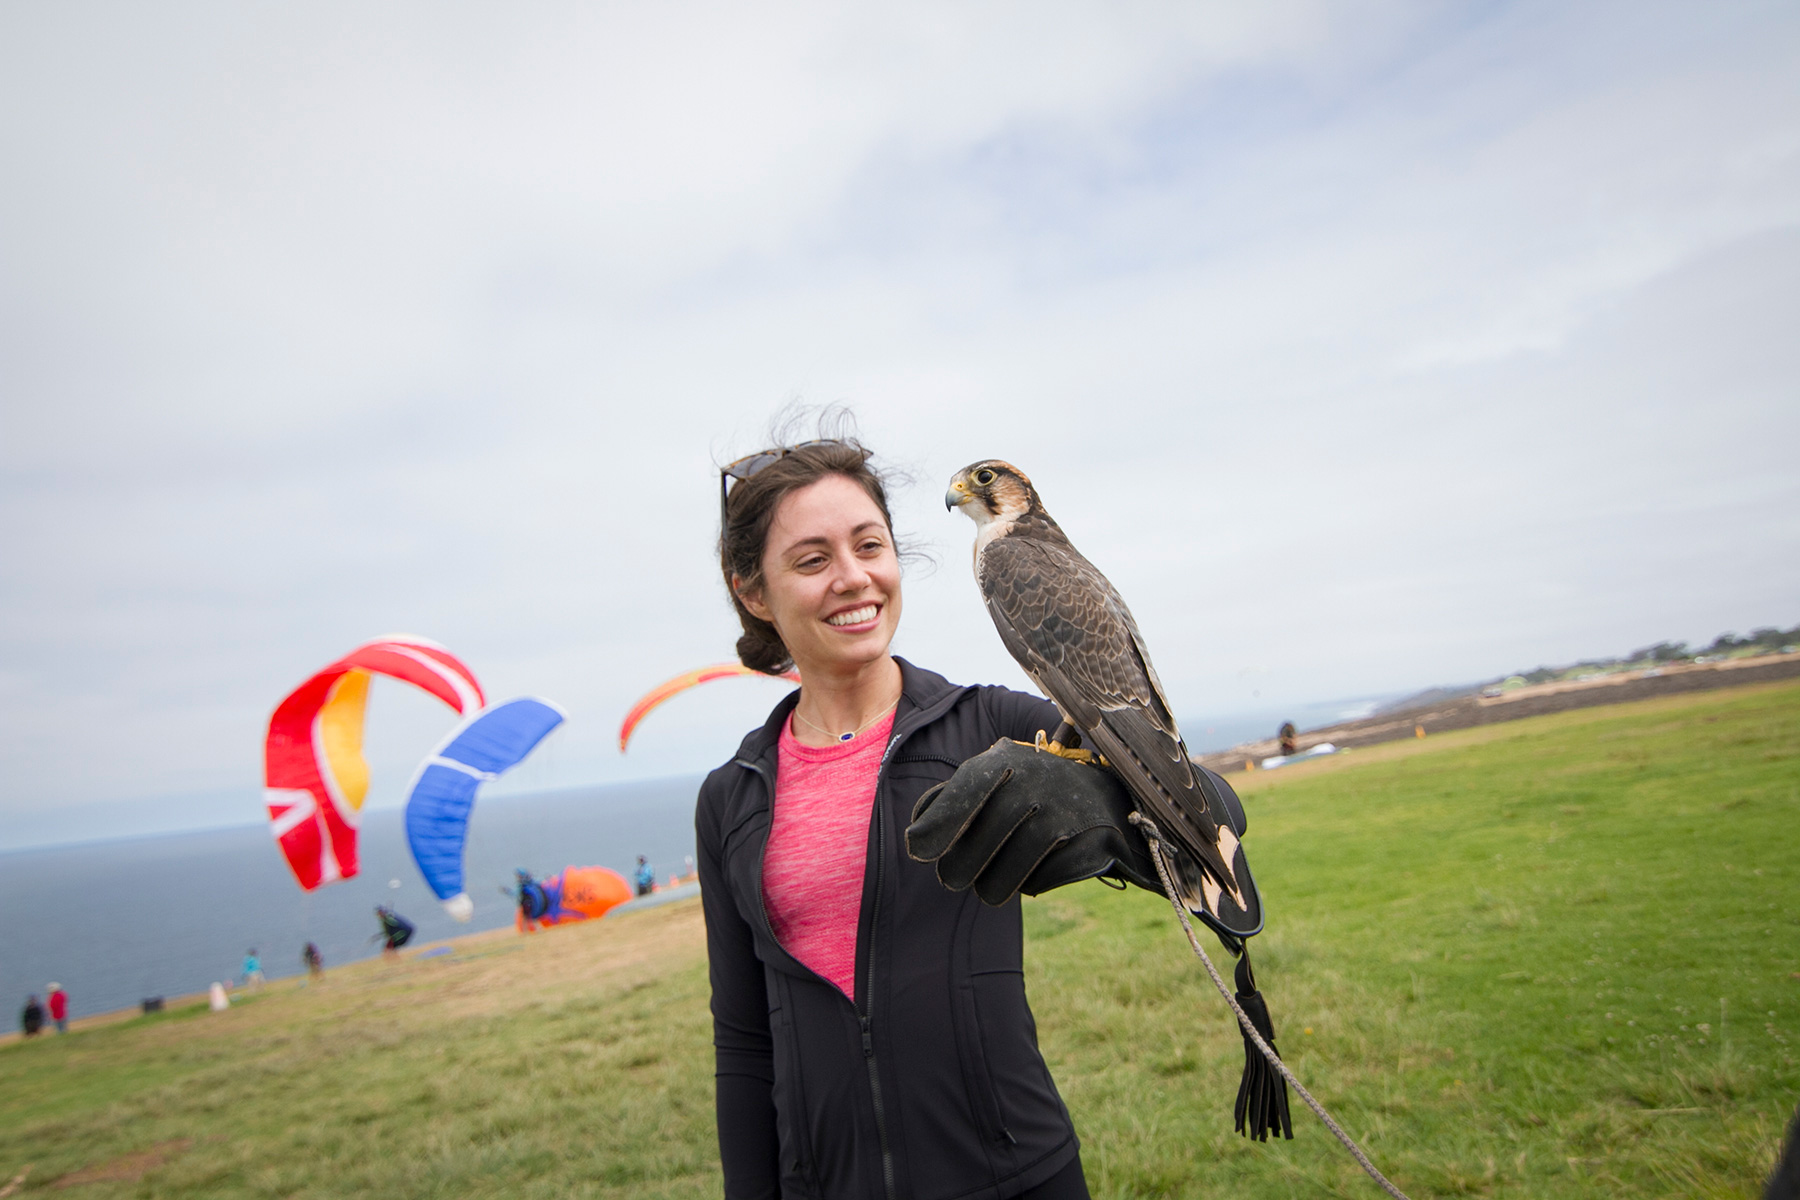 Educator with falcon at a paragliding spot near a beach cliff